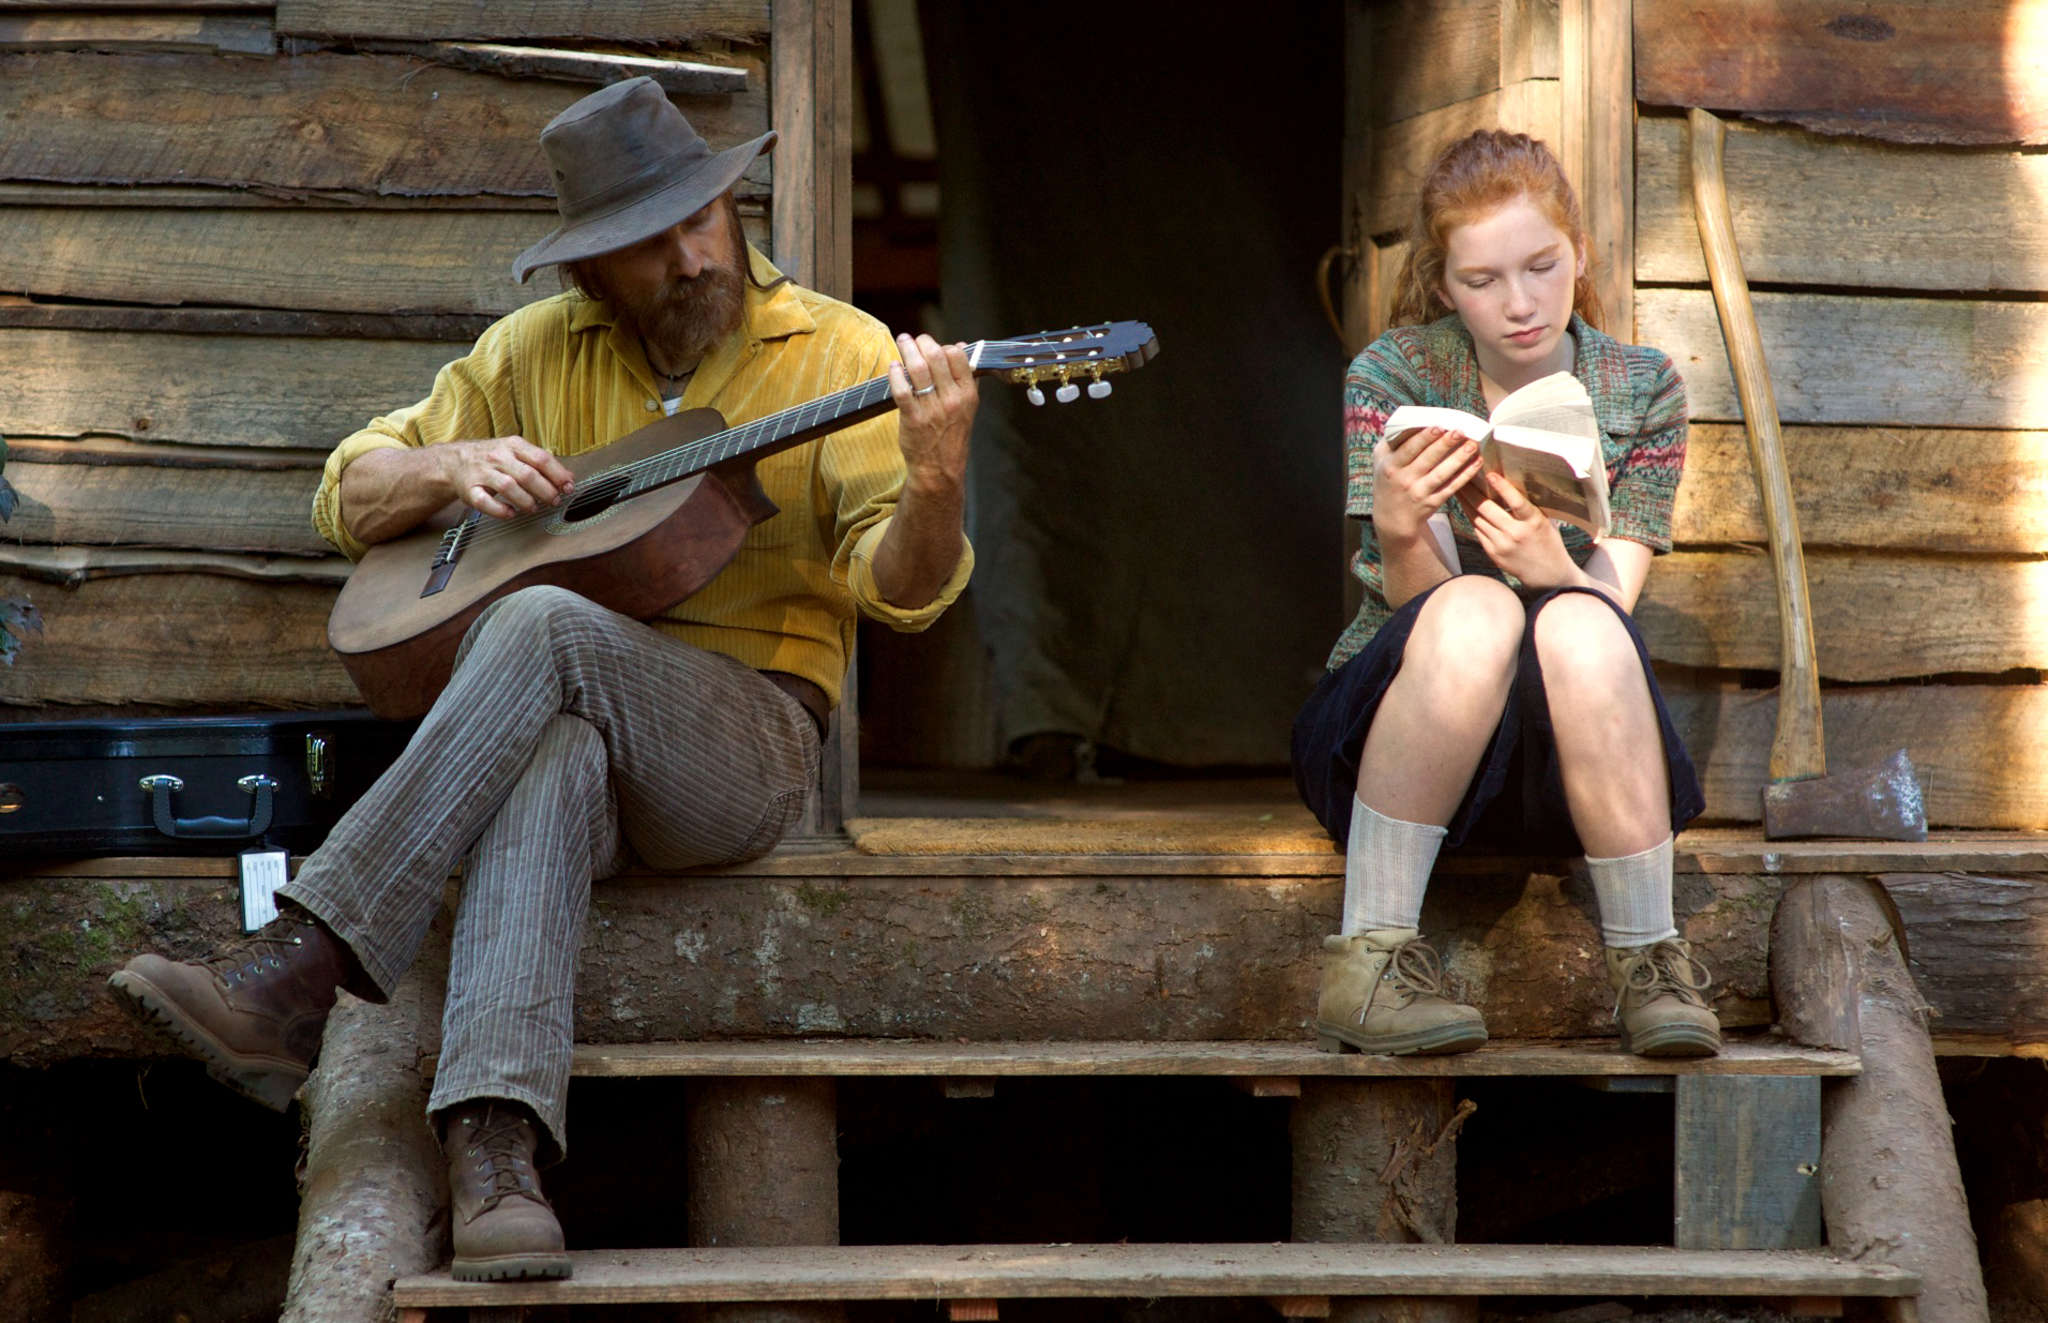 """Captain Fantastic"" stars Viggo Mortensen and Annalise Basso as one of his children."